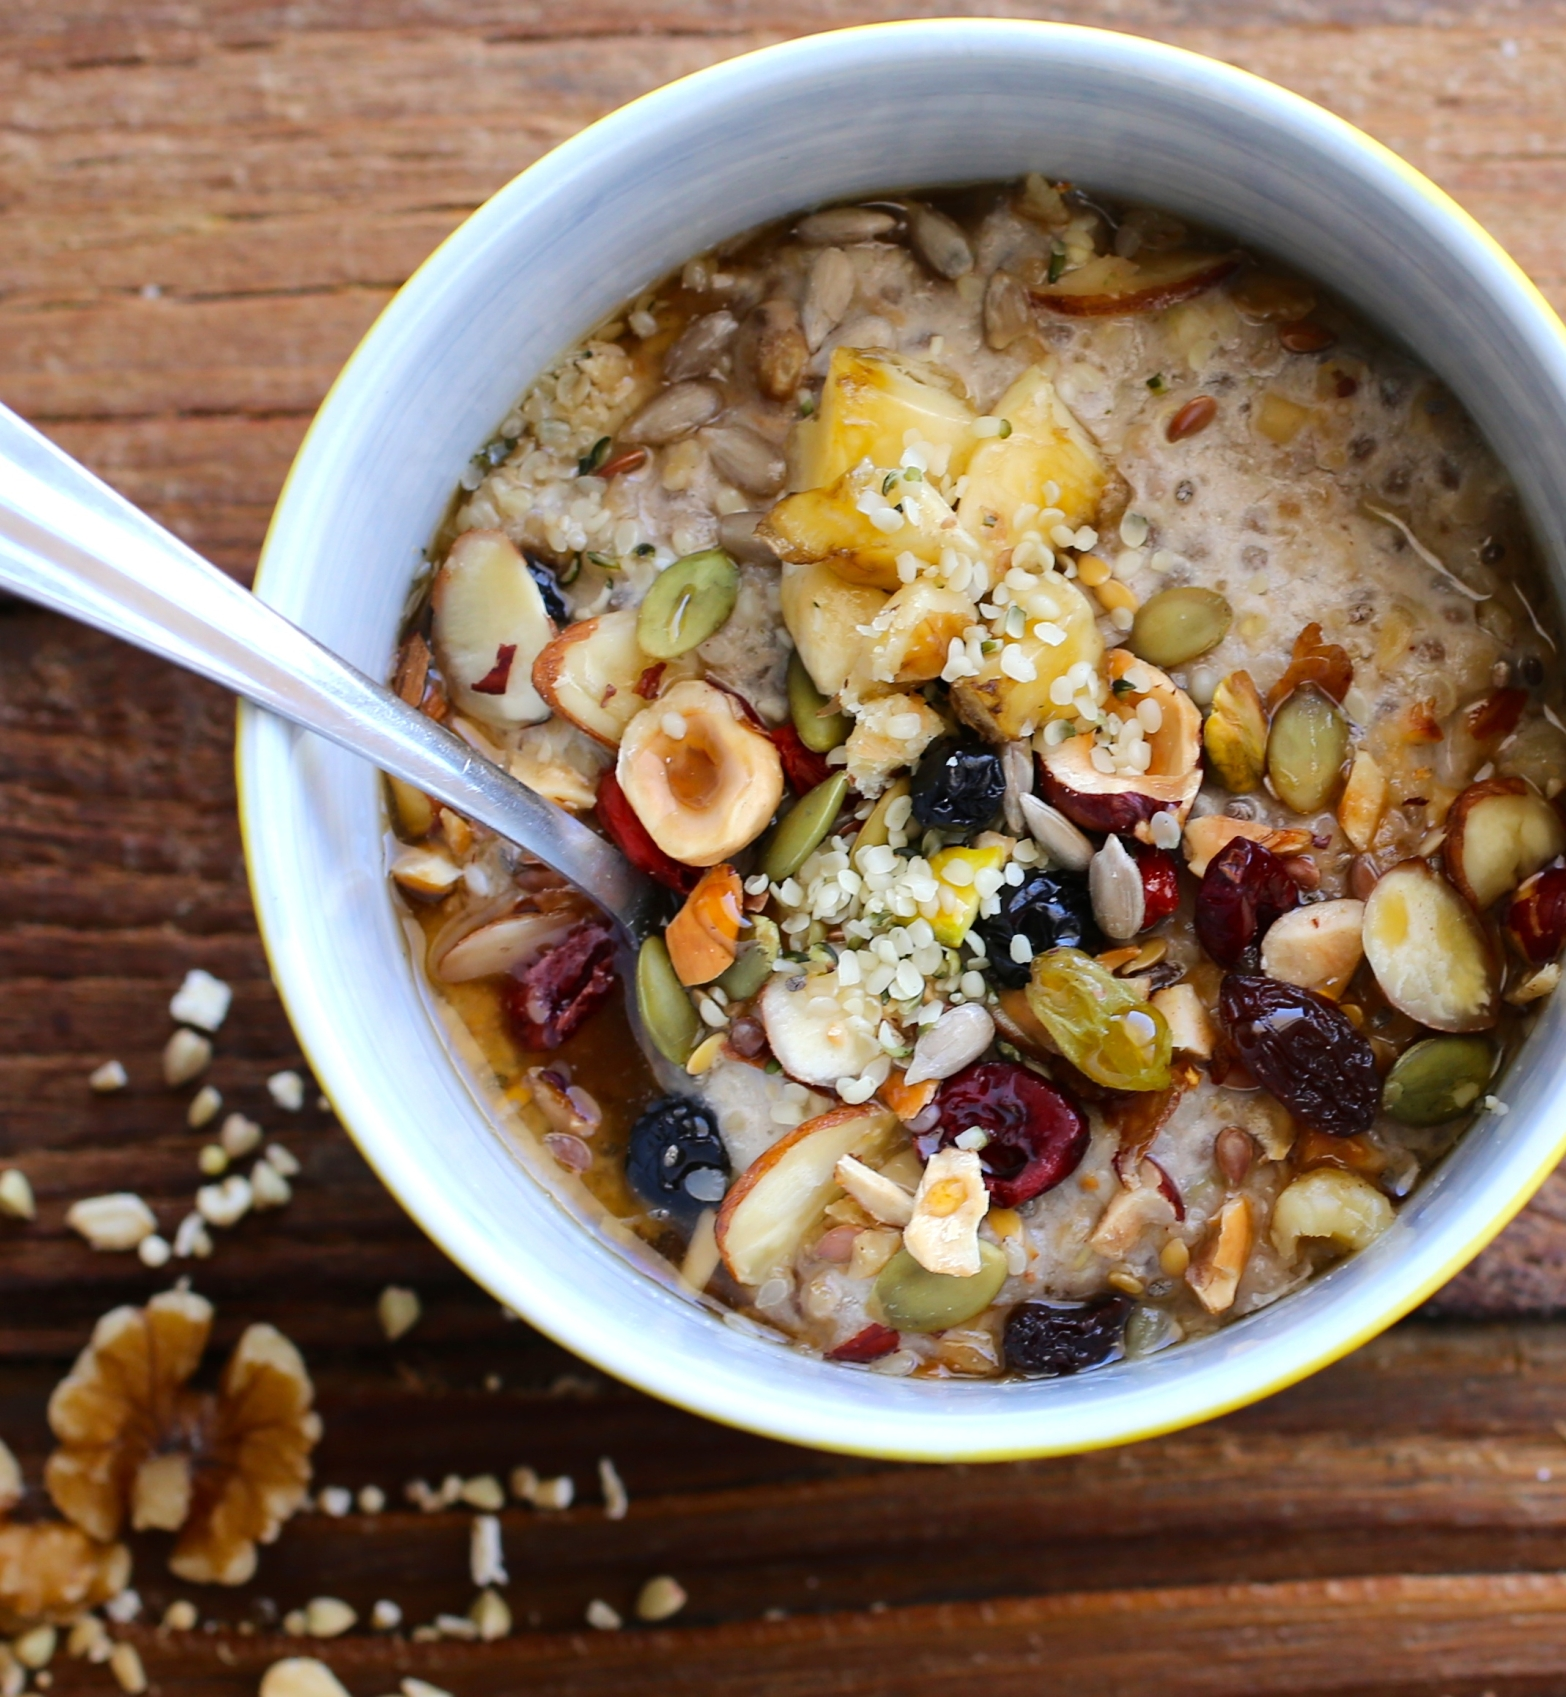 Supergrains Porridge